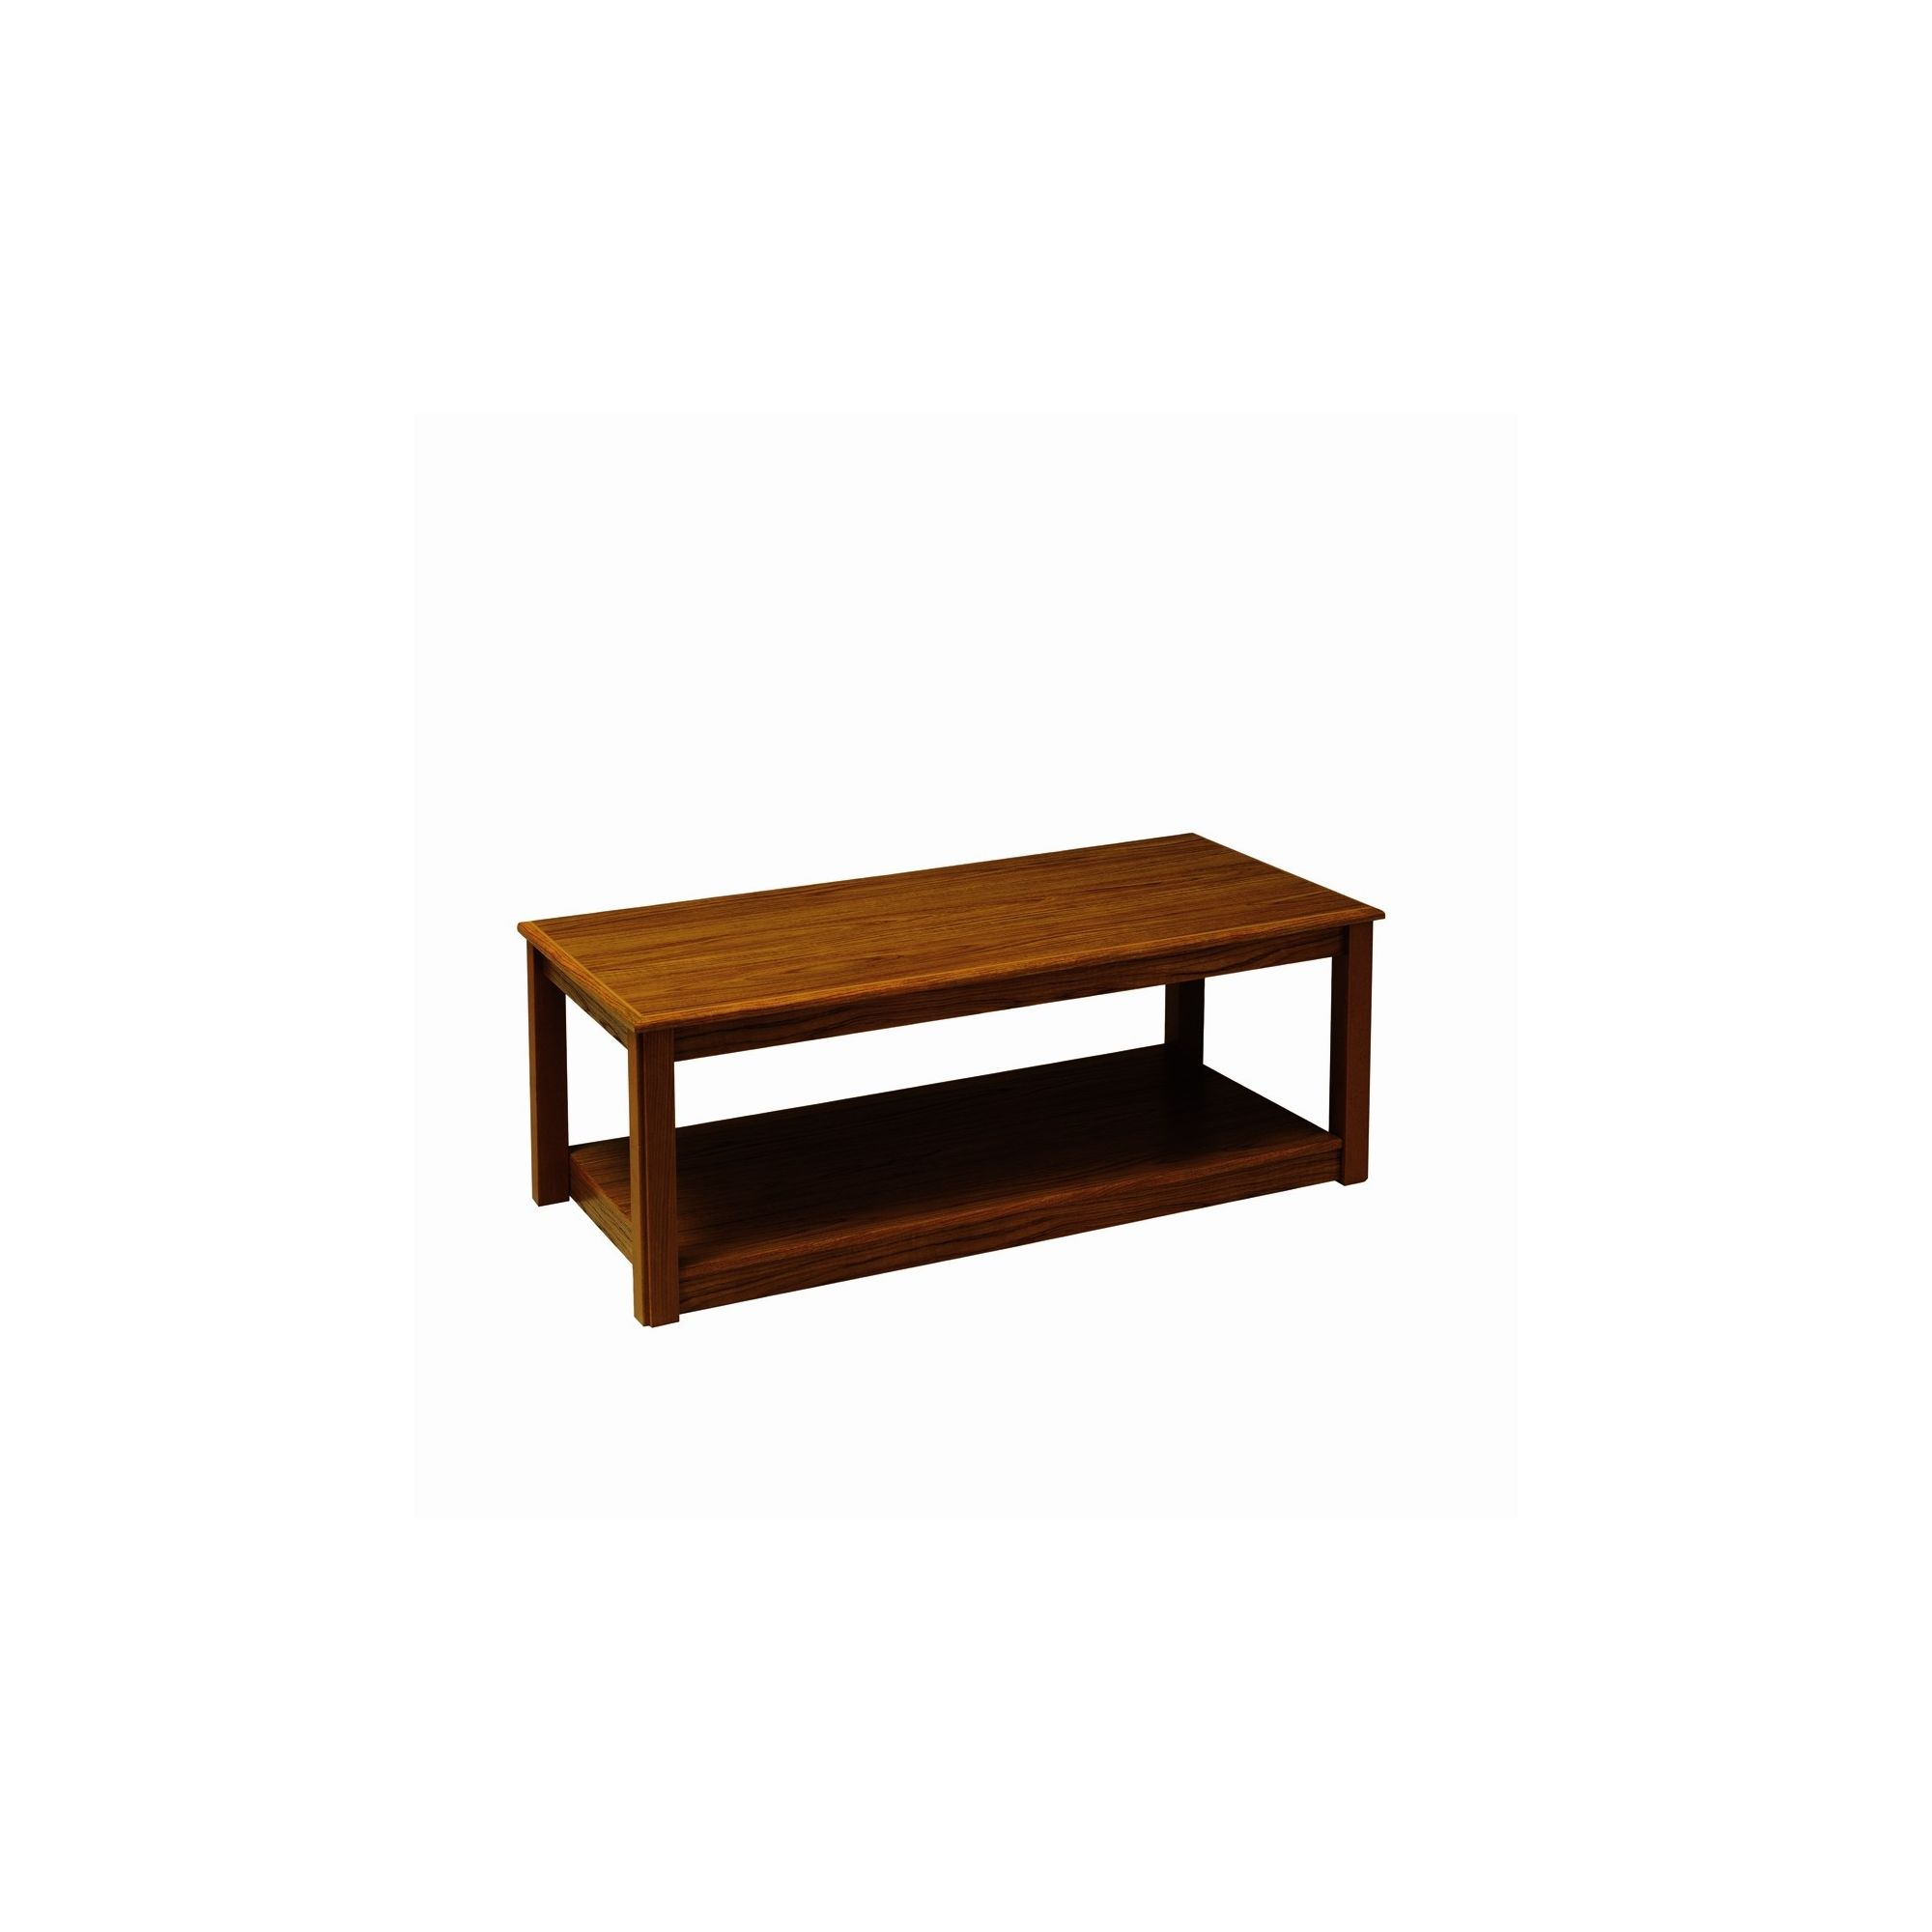 Caxton Byron Coffee Table in Mahogany at Tesco Direct